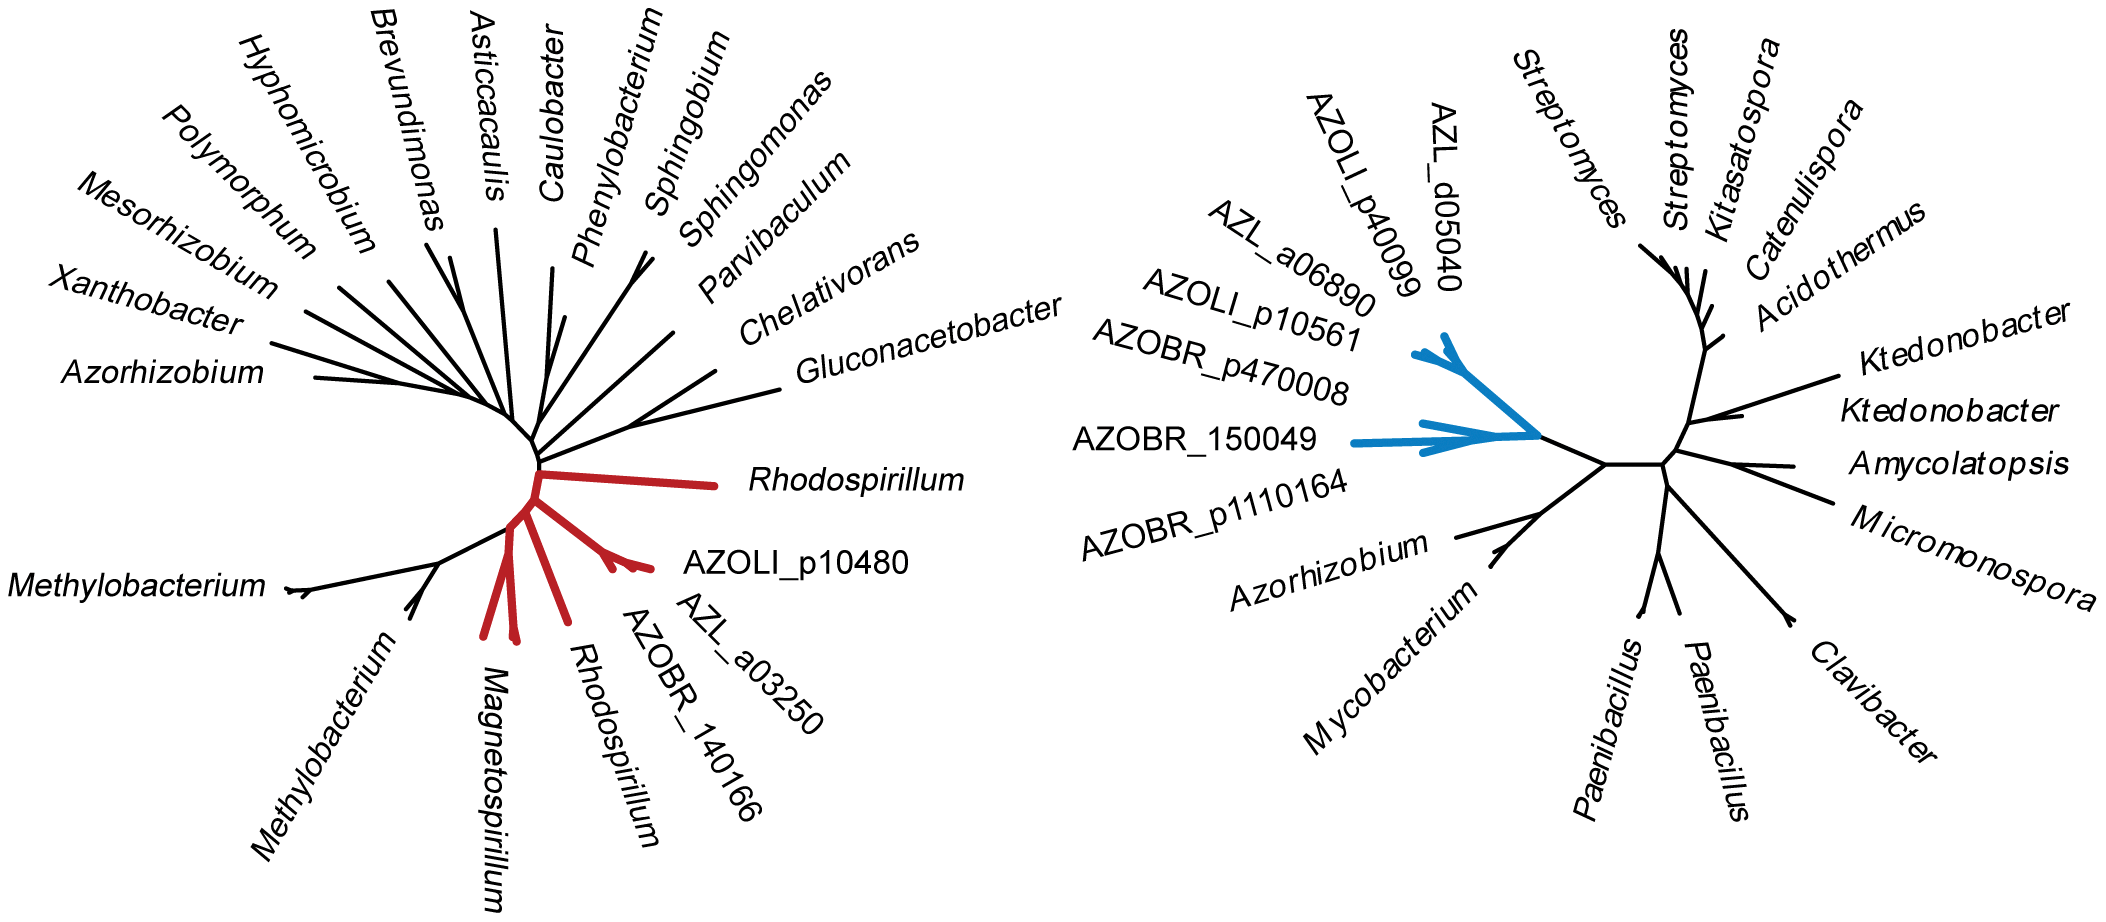 Phylogenetic trees for thiamine synthetase (left) and cellulase (right).